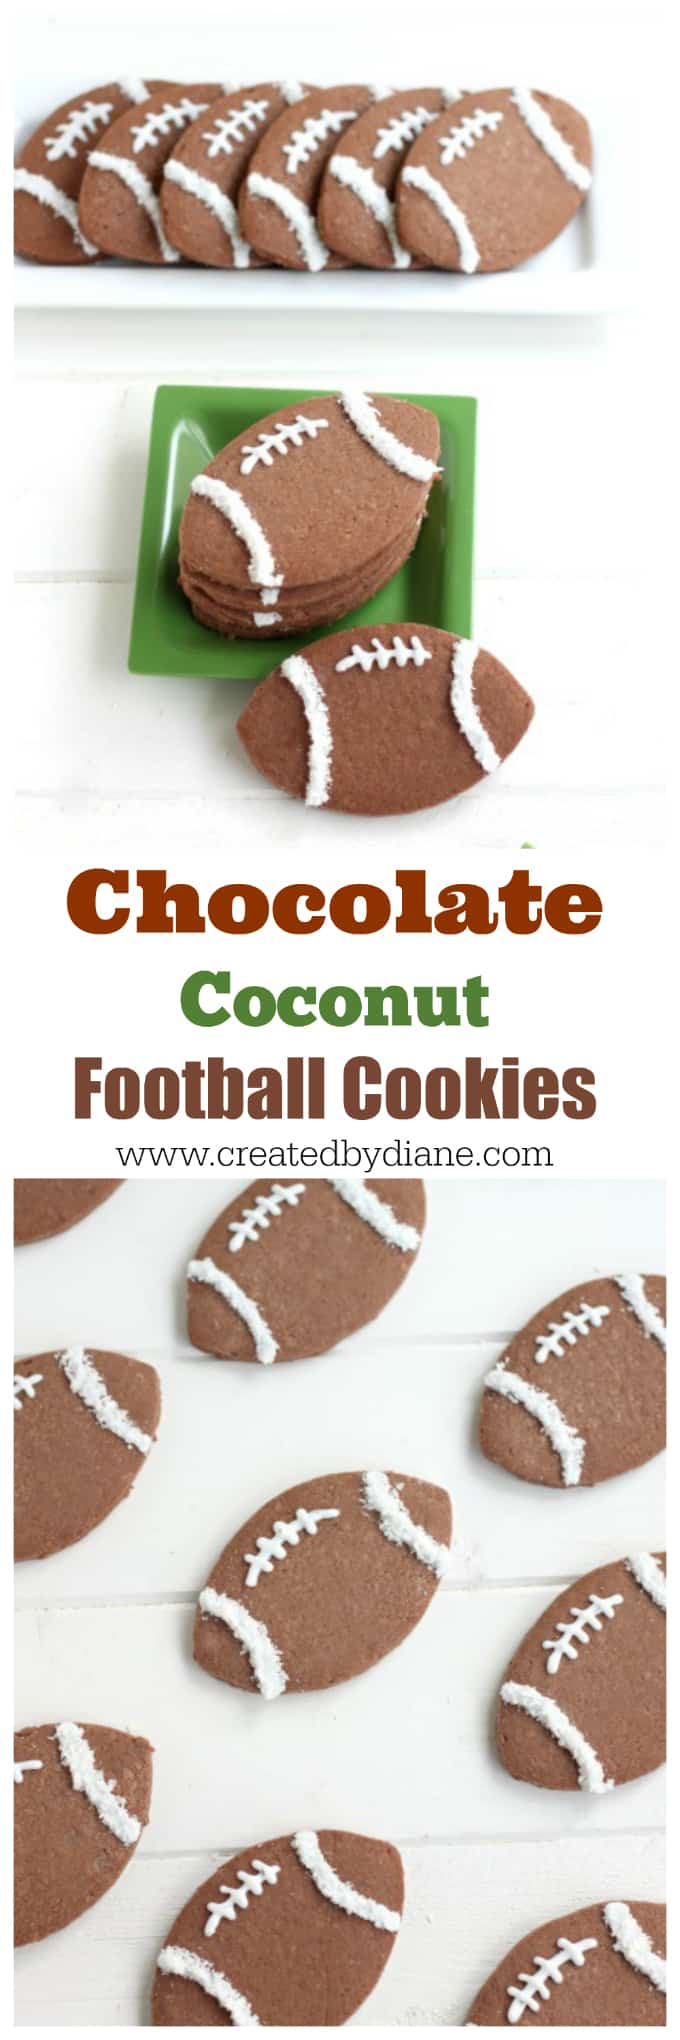 chocolate coconut FOOTBALL Cookies www.createdbydiane.com